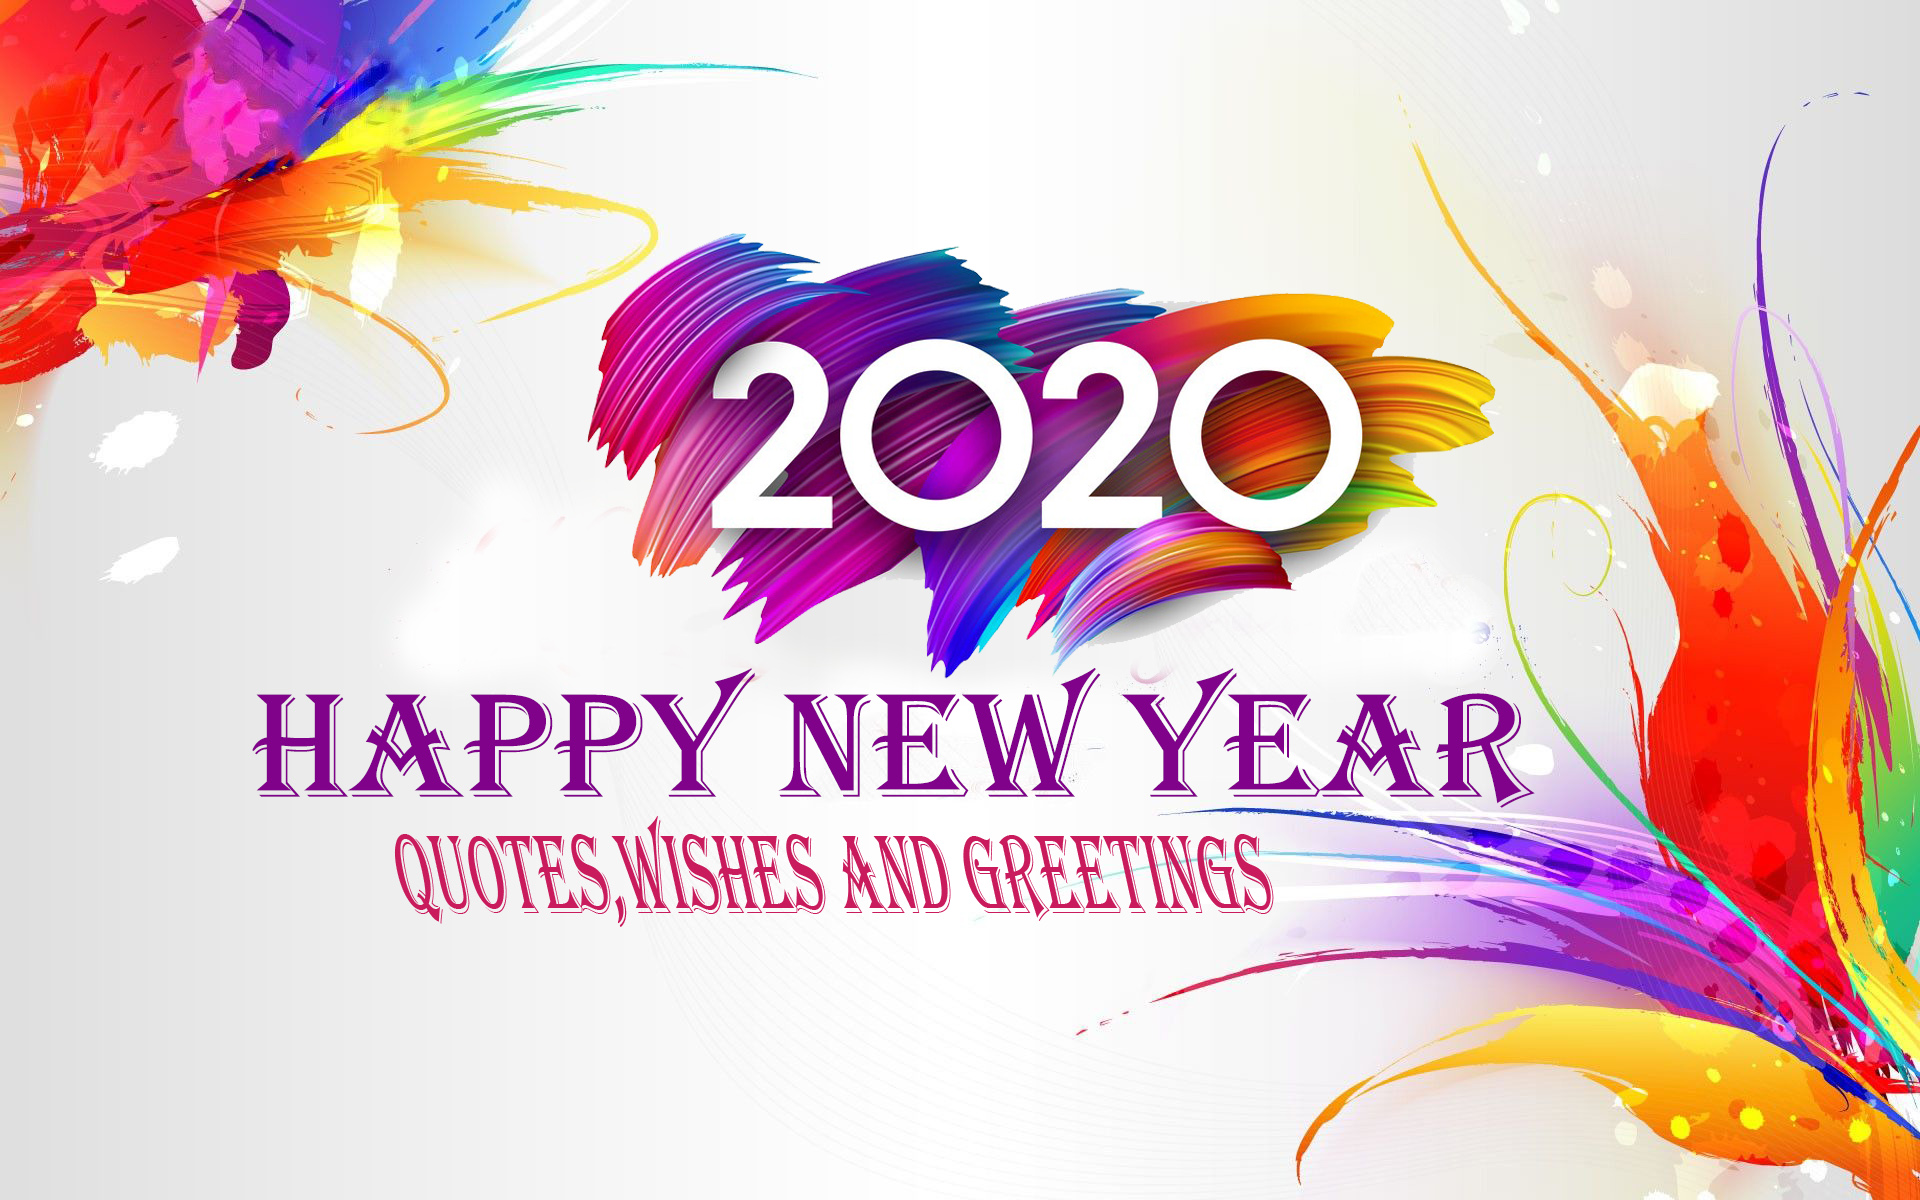 download Happy New Year 2020 Quotes Images Wishes and 1920x1200